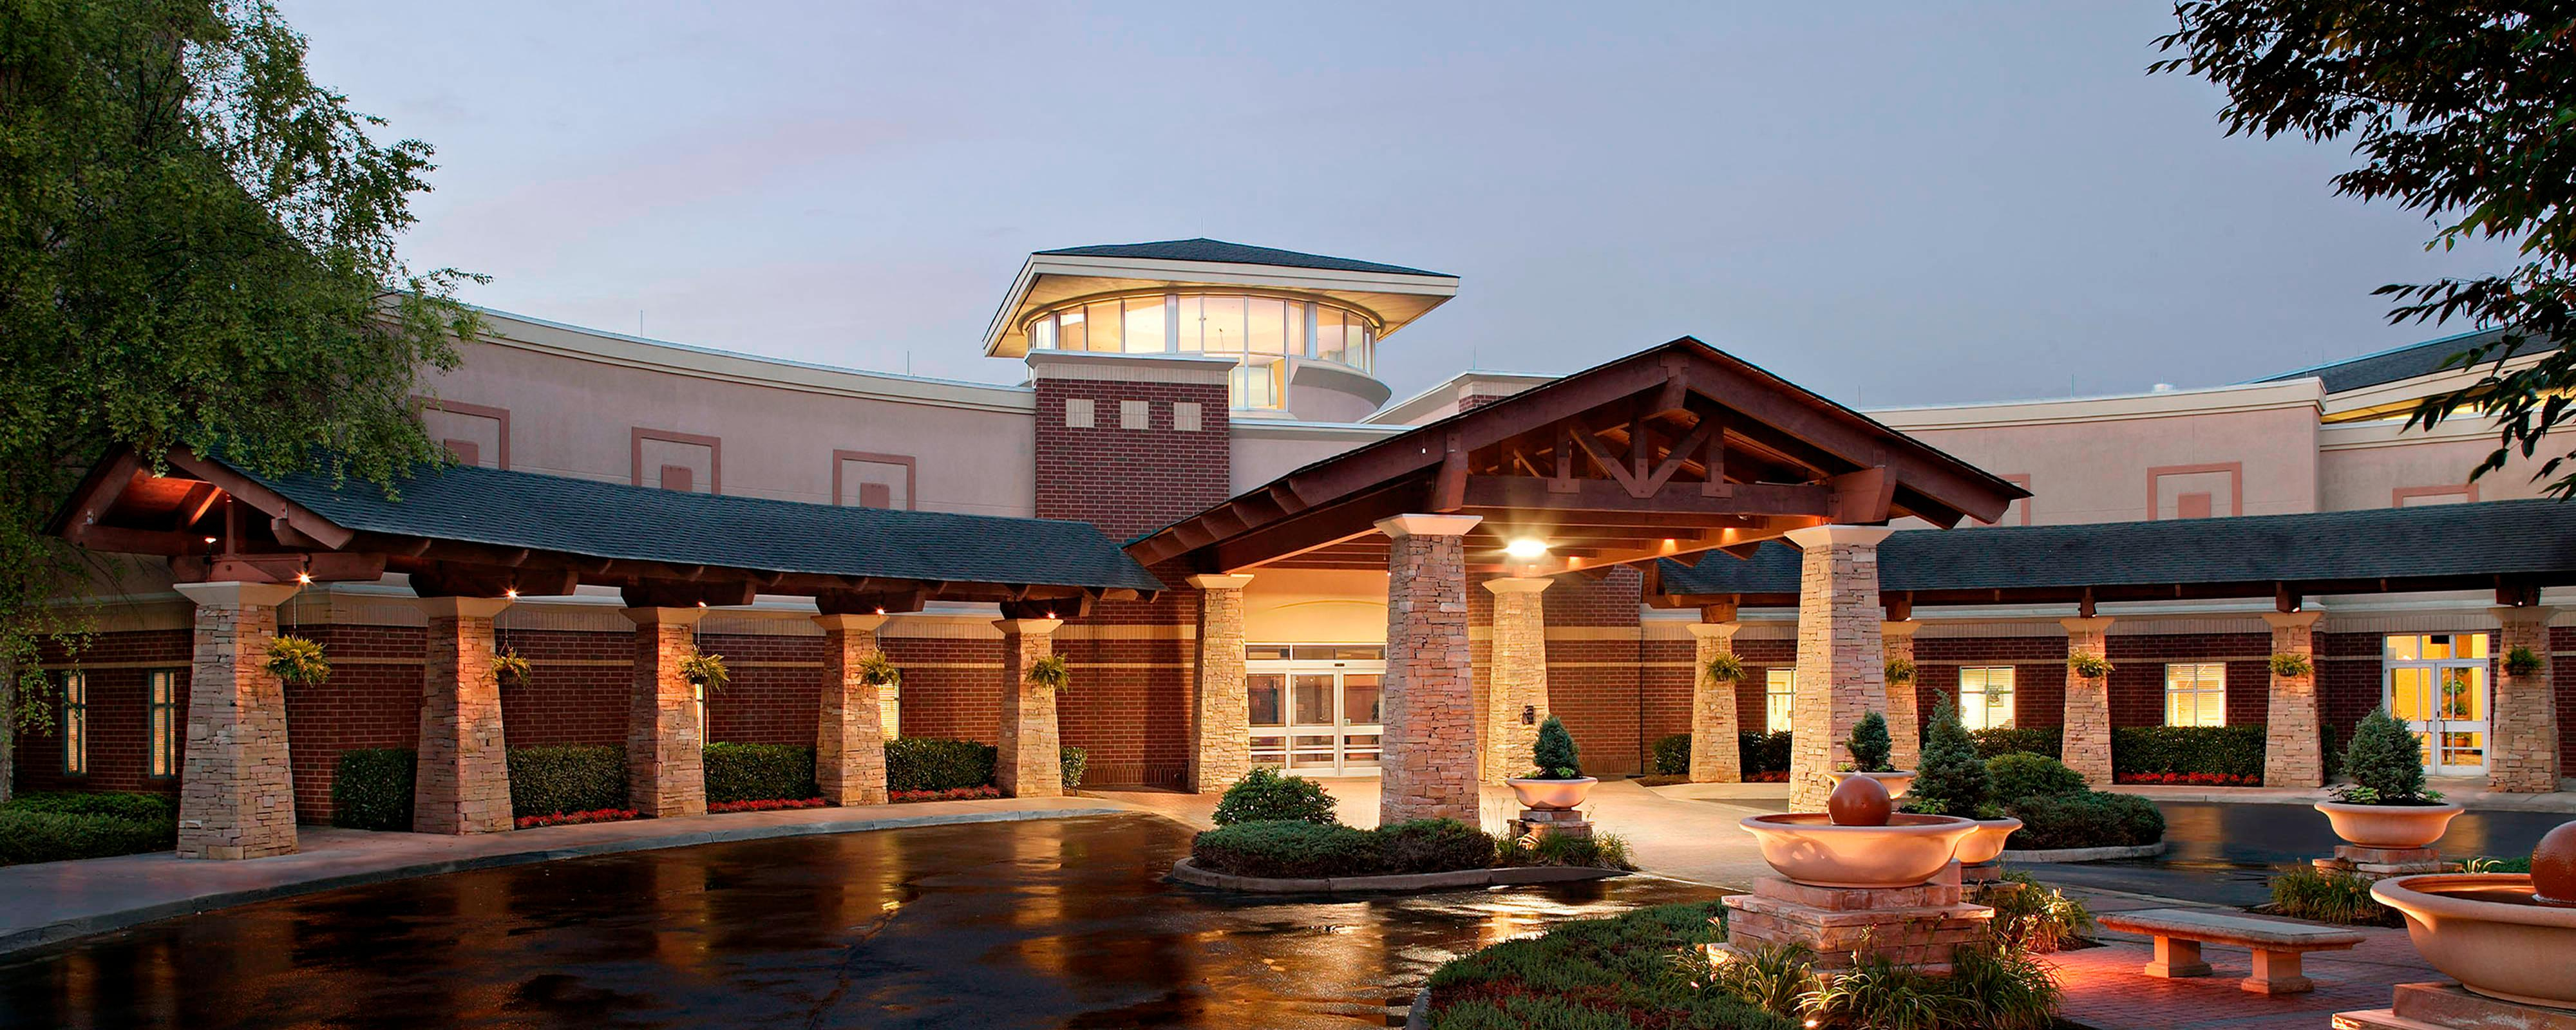 Kingsport Tennessee Hotel | Meadowview Conference Resort Throughout Meadowview Convention Center Events 2021